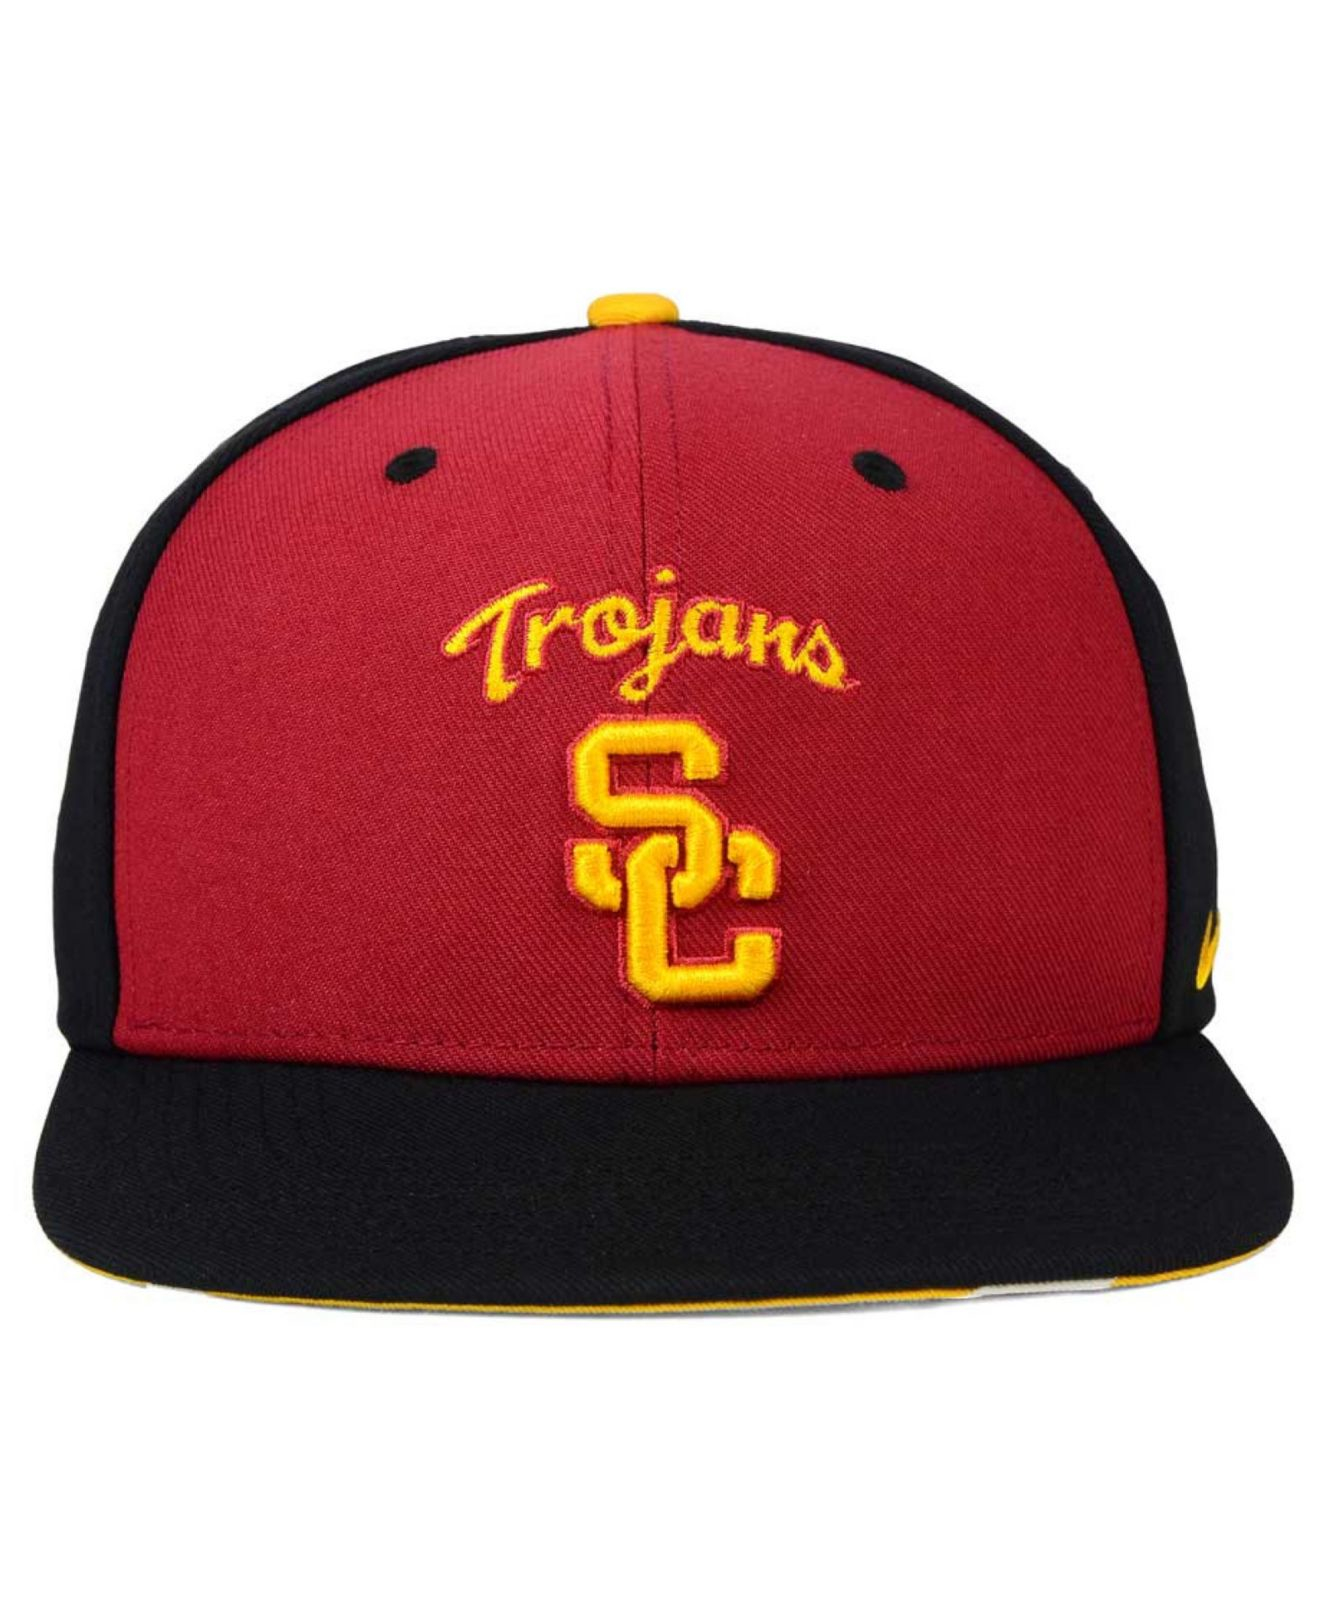 58a185b1632 ... where can i buy lyst nike usc trojans pro verbiage snapback cap in  black for men